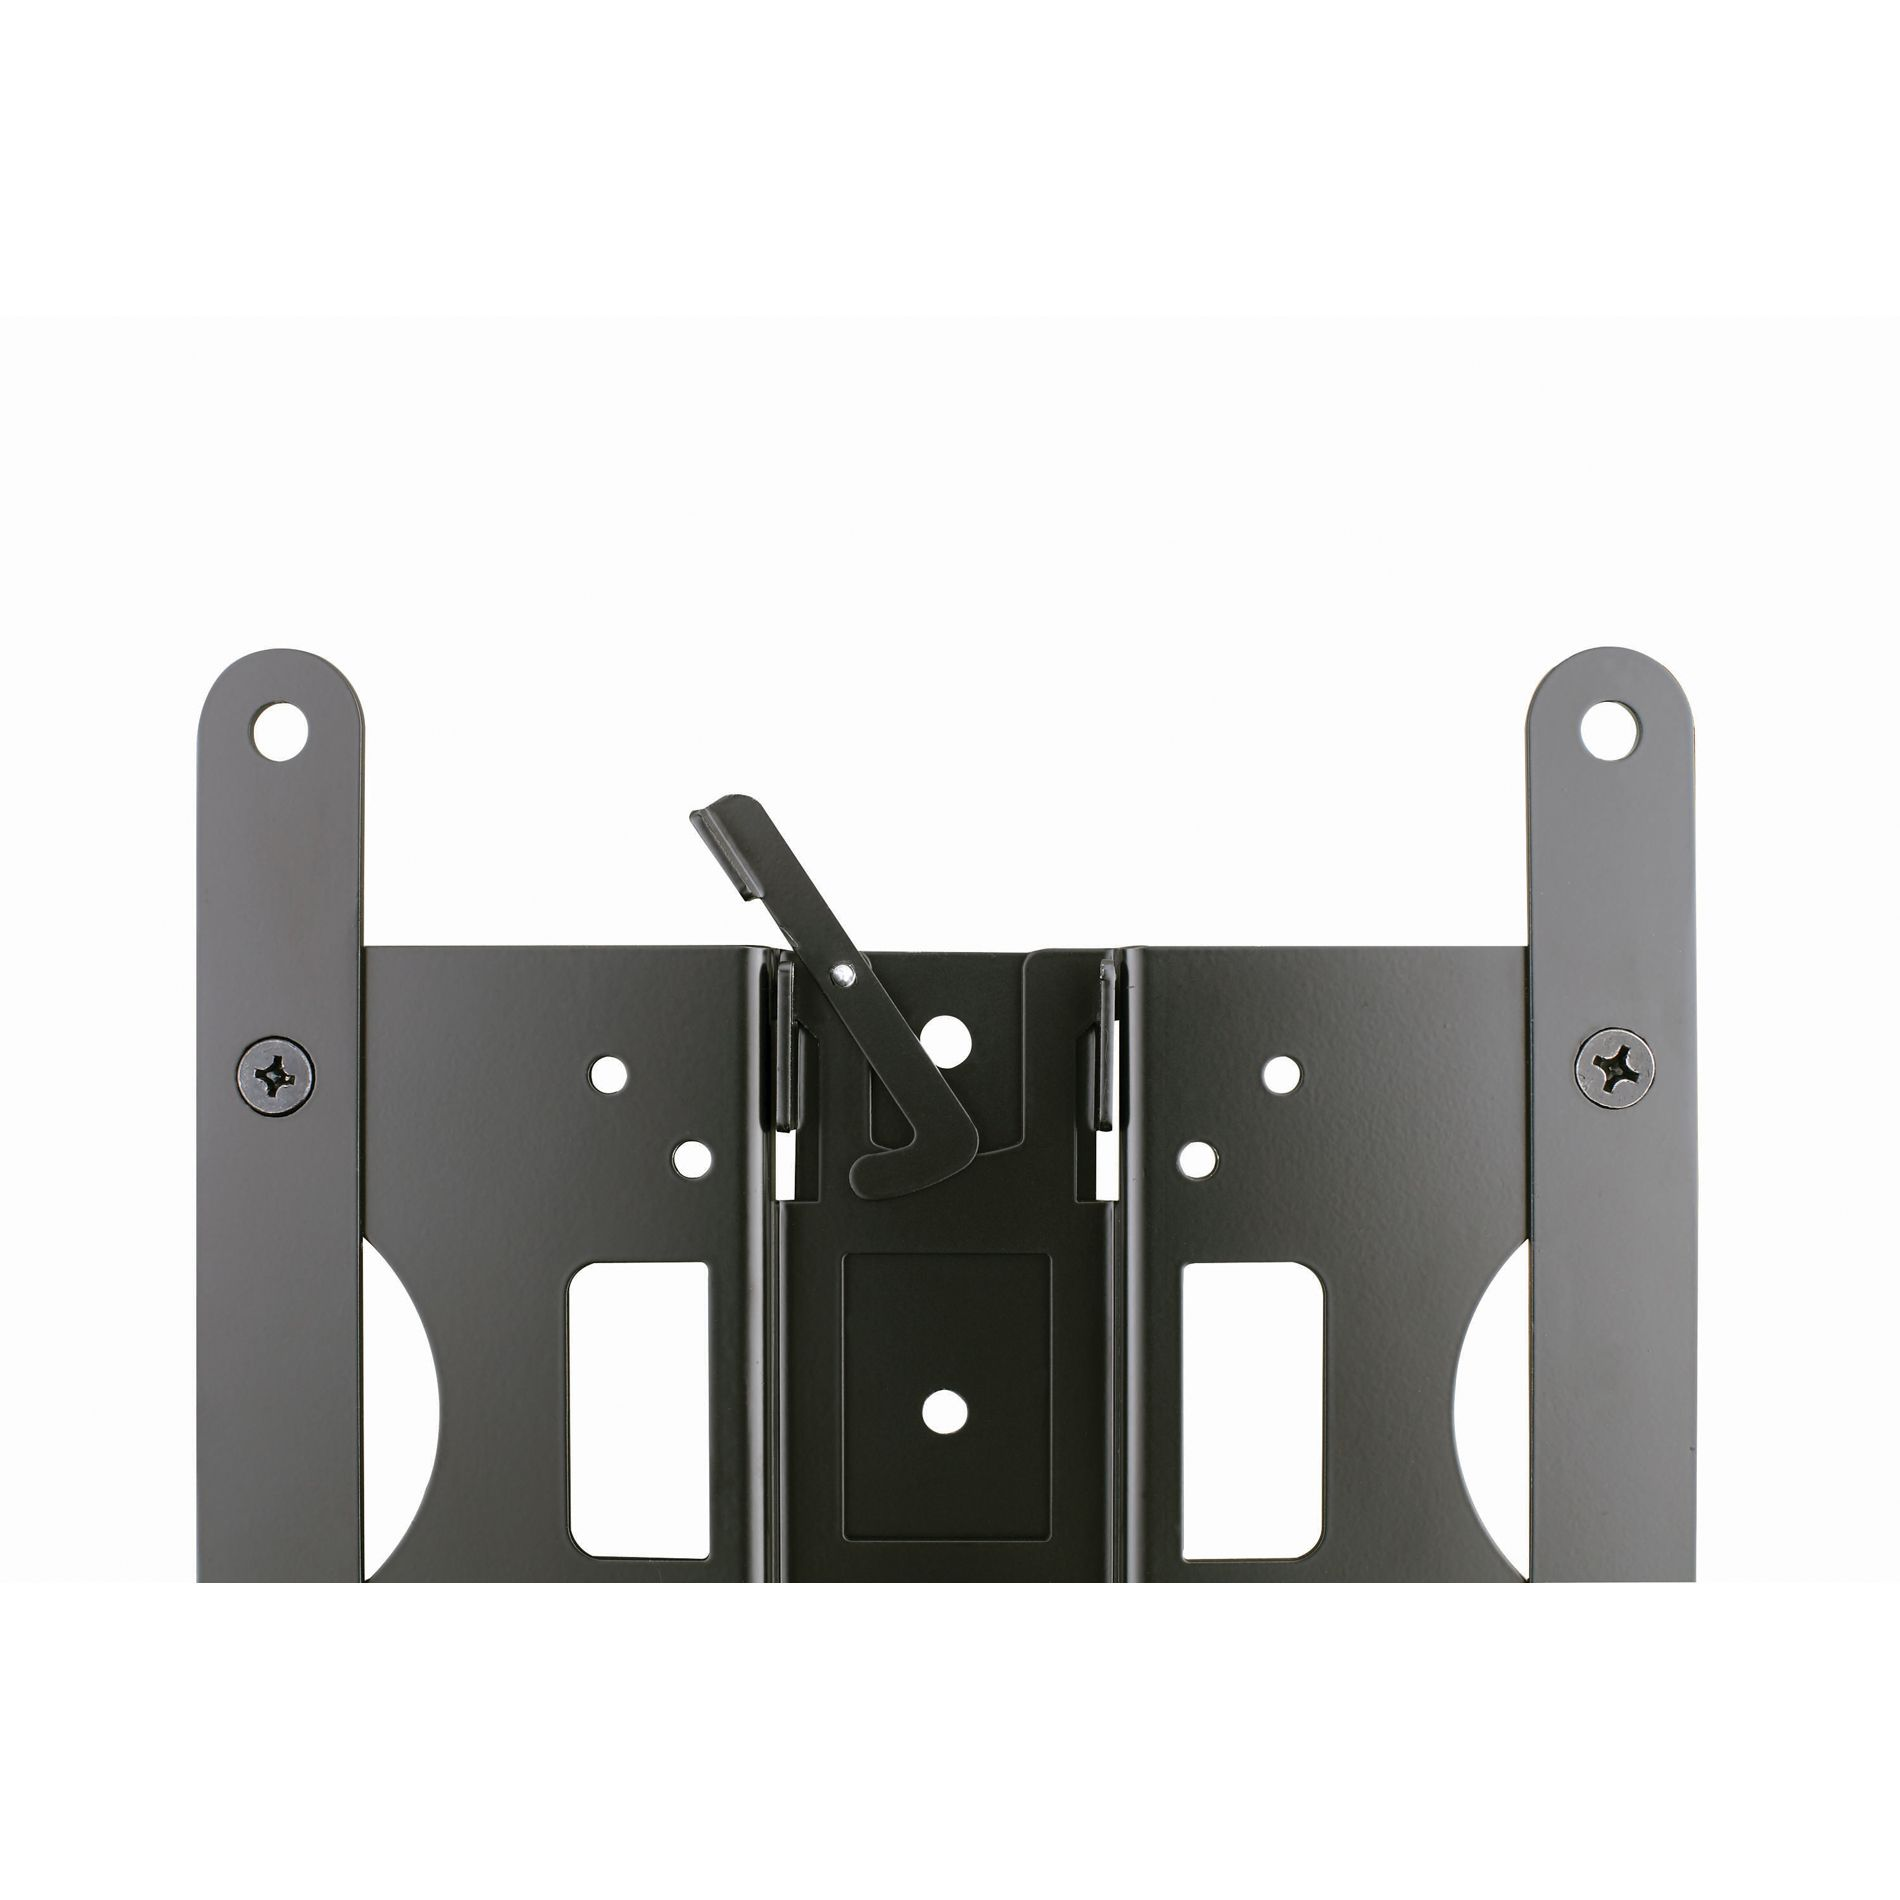 "Alphaline™ Small Tilt Wall Mount for 13-32"" TVs ZST15-B1"